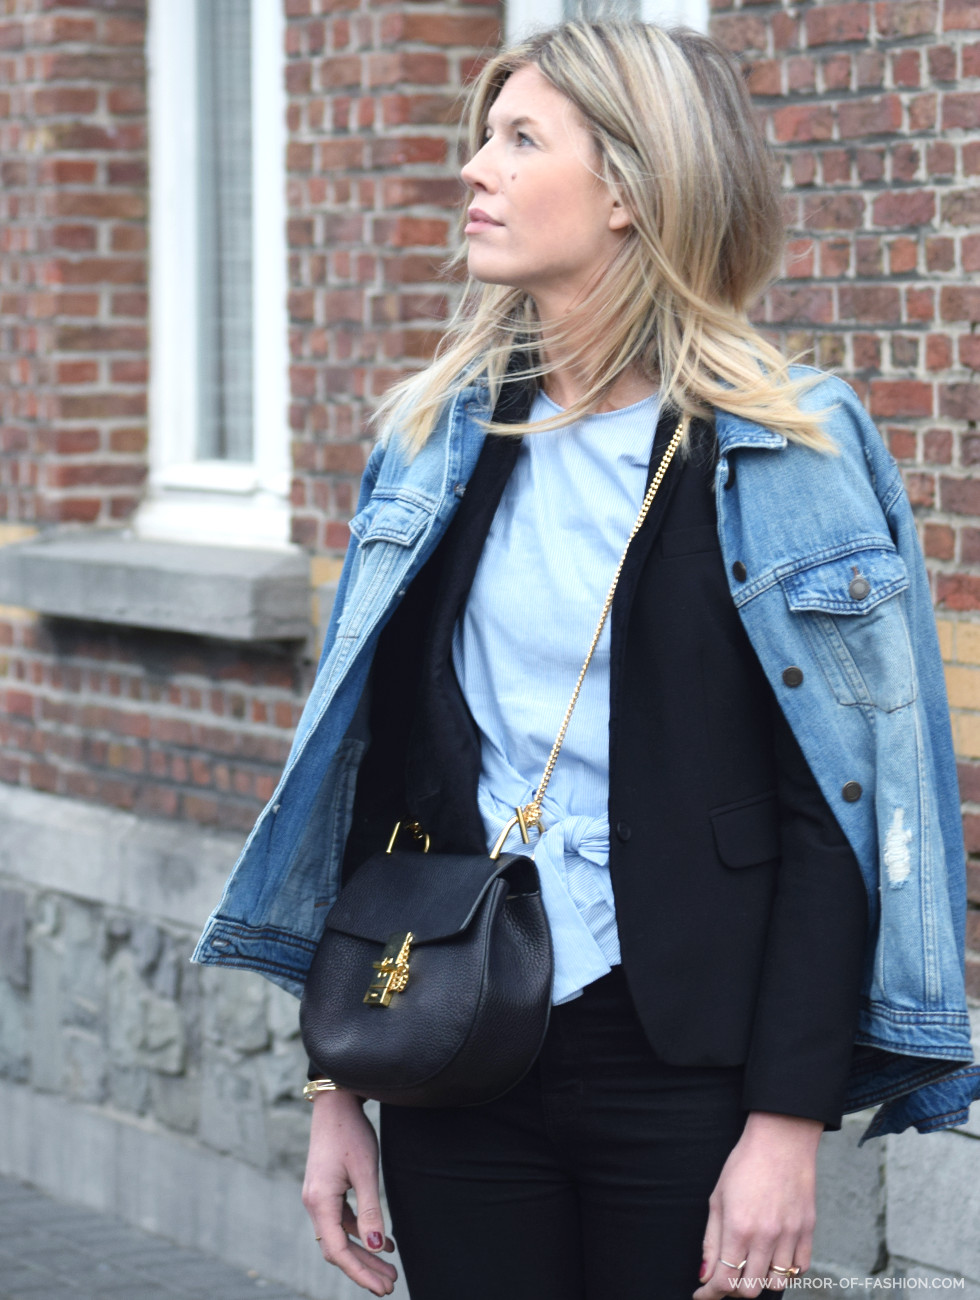 Outfit of the day, Zara, Maje, Chloé, Geox, Jbrand, ootd, style, look, fashion, blogger